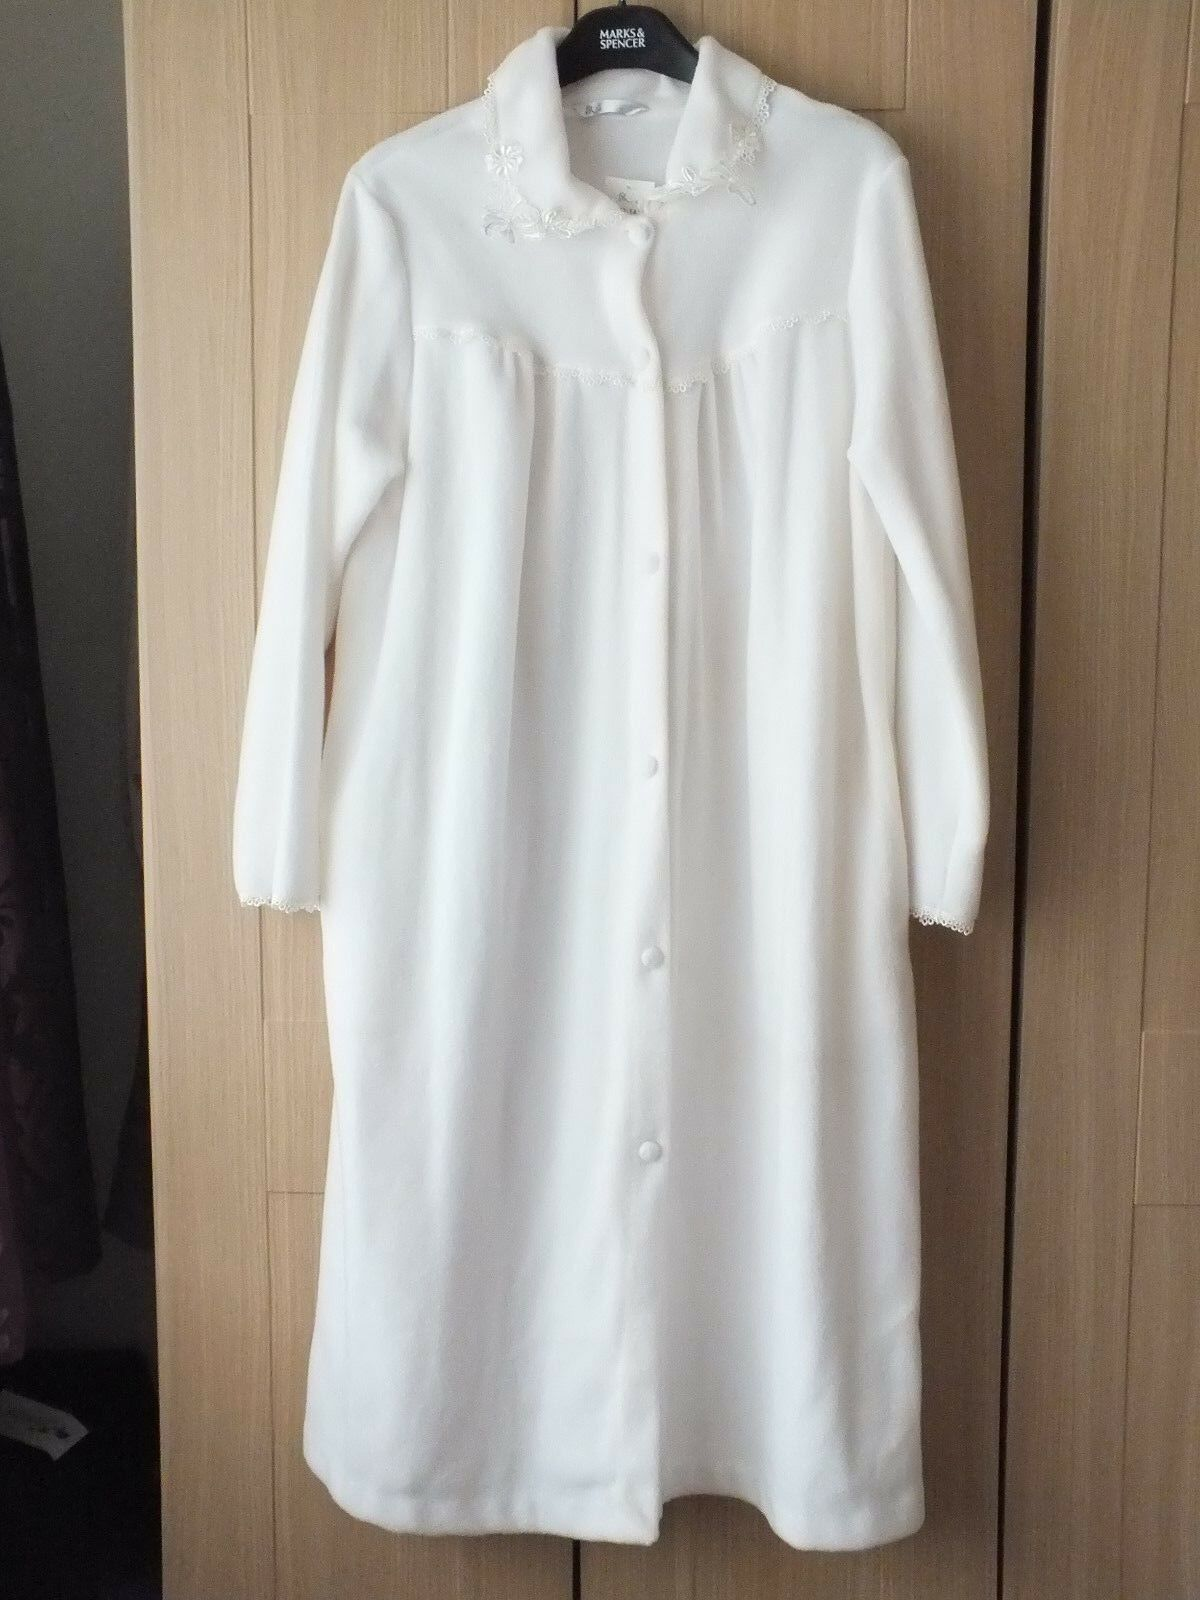 Enchanting Bhs Dressing Gowns Ladies Adornment - Images for wedding ...